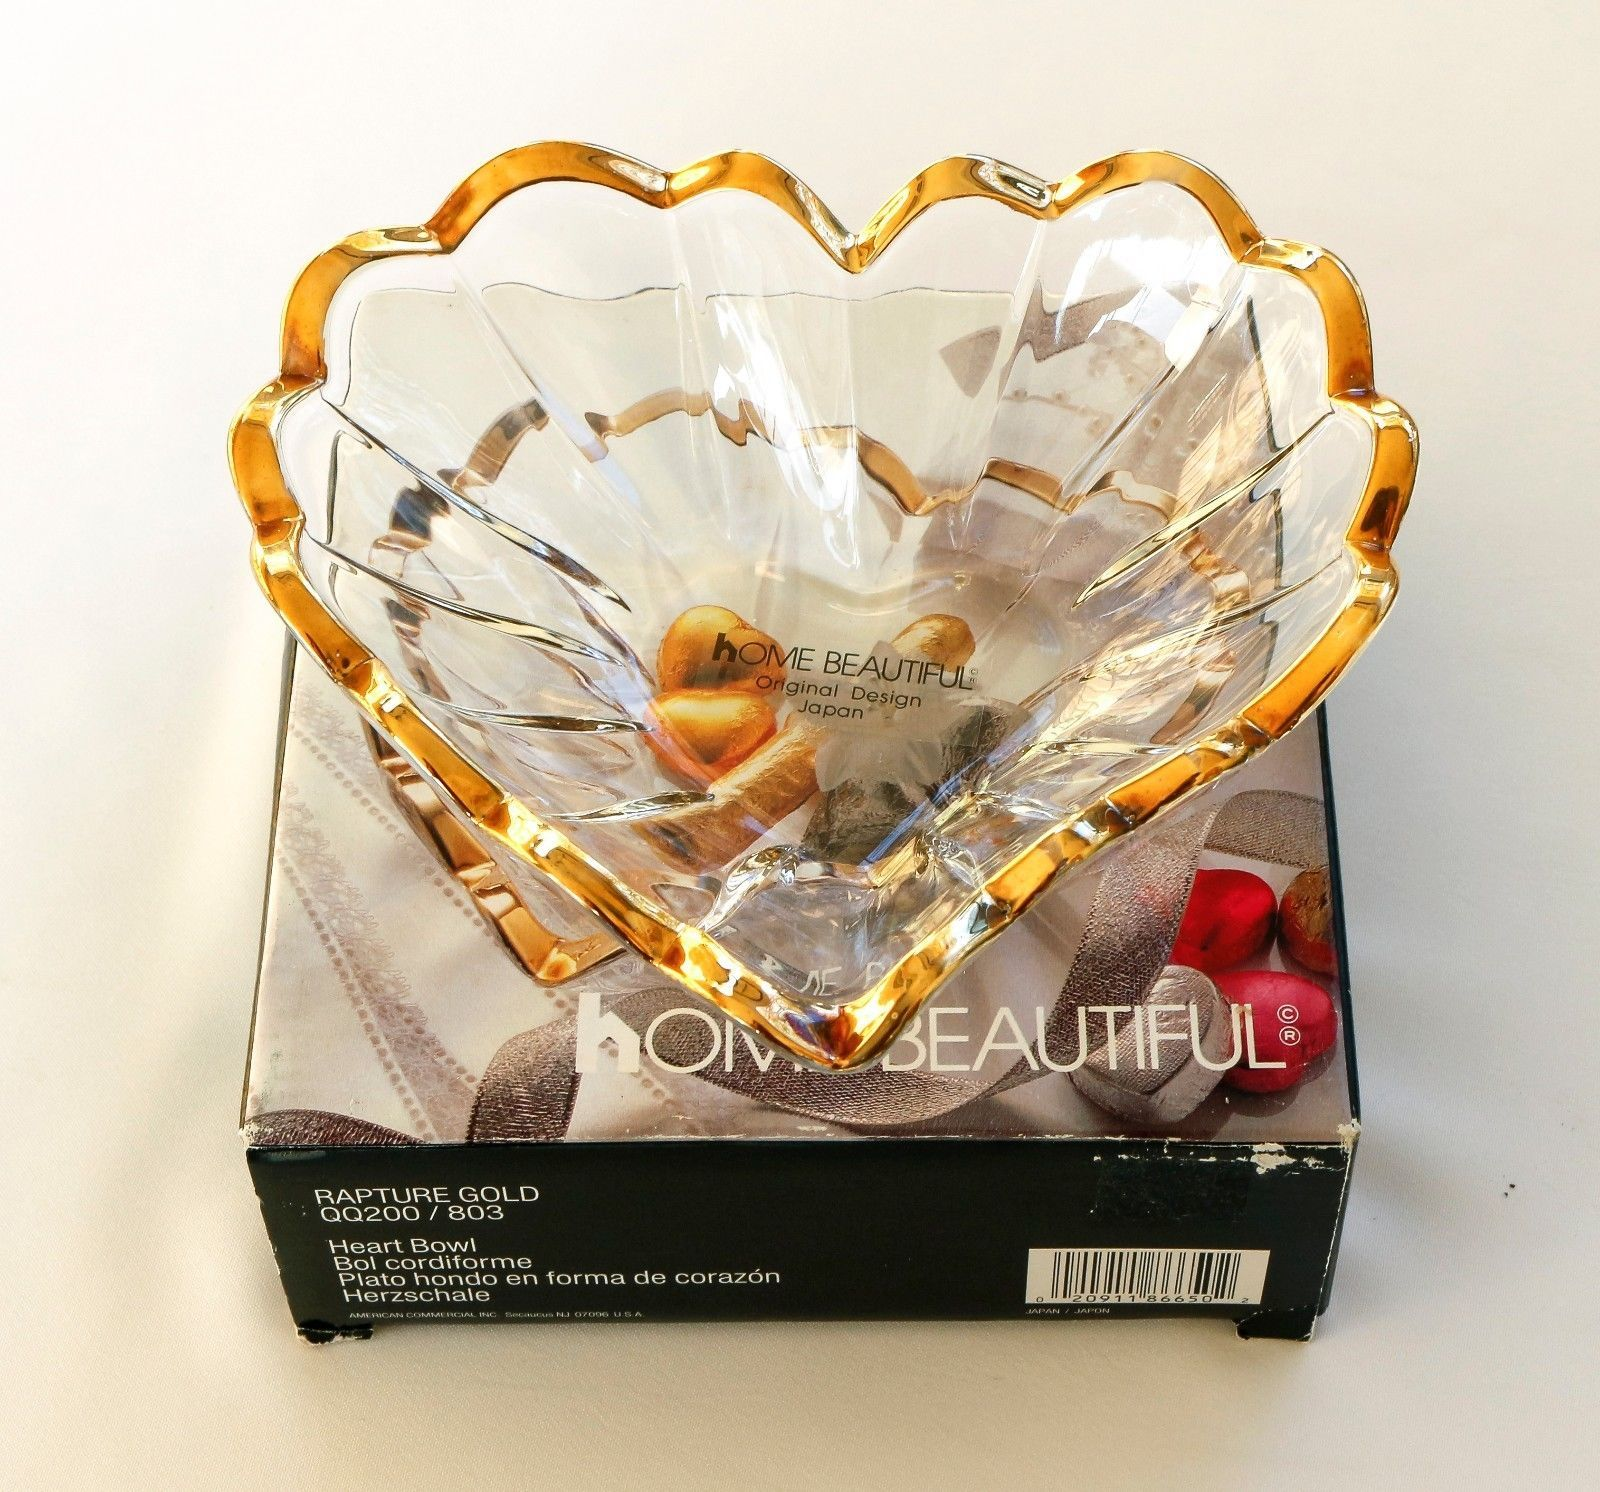 Vintage Crystal Heart Bowl Made In Japan By Home Beautiful | EBay